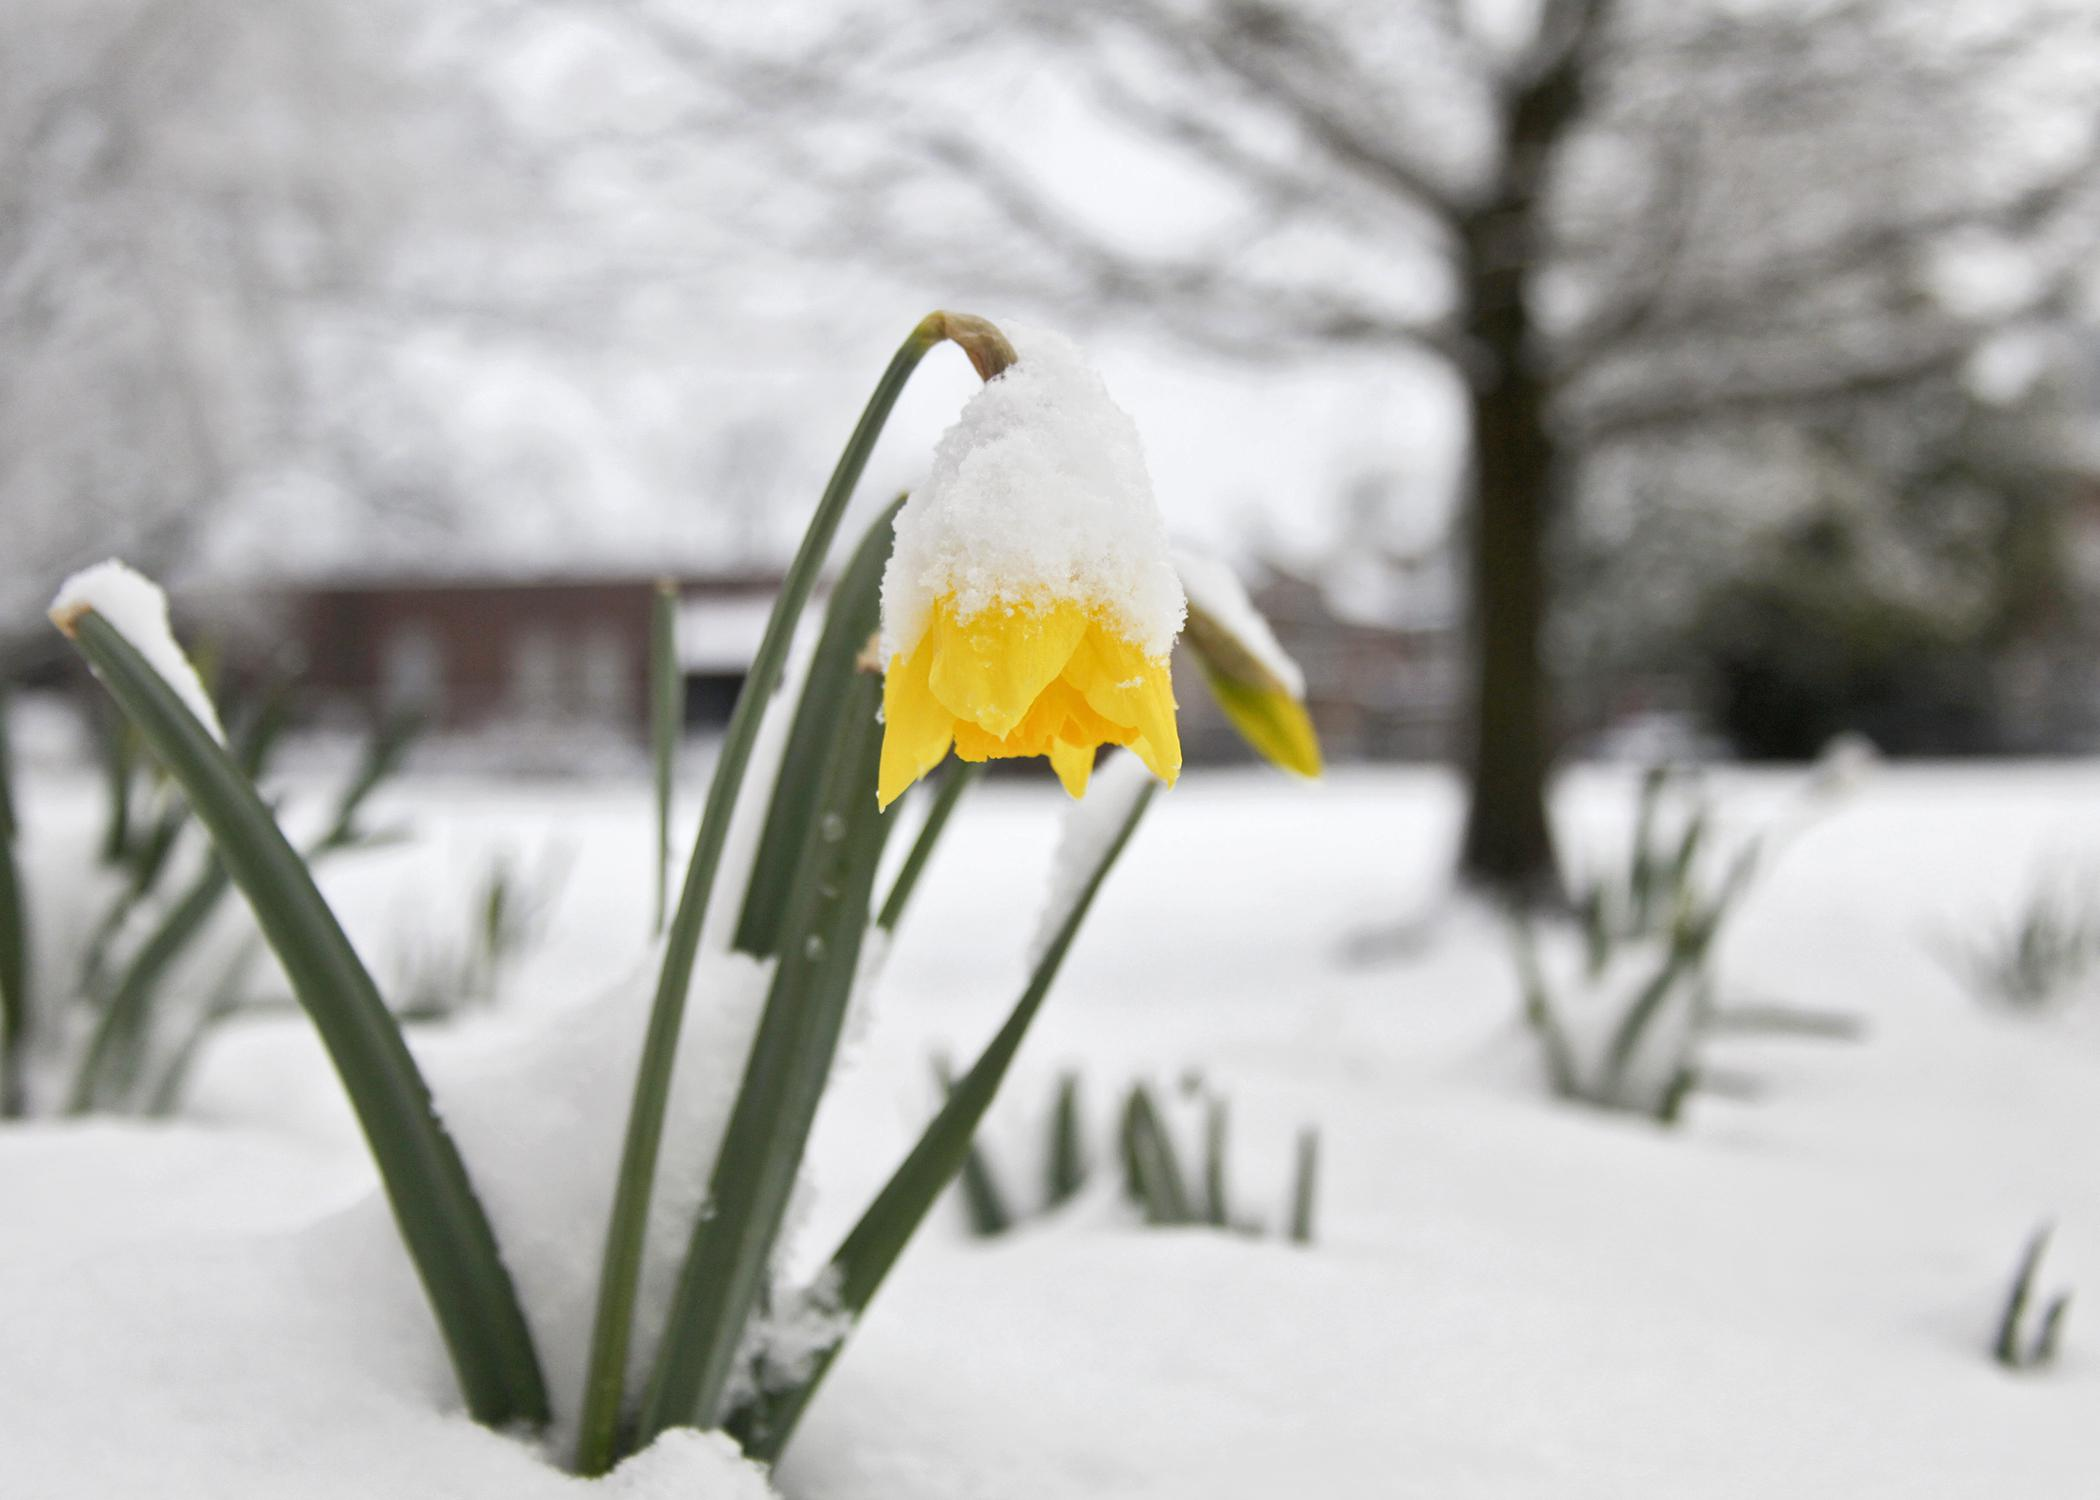 Late winter in Mississippi sometimes brings both blooms and snow. Daffodils, such as these blooming at Mississippi State University on Feb. 26, 2015, will survive to look pretty once temperatures moderate. (Photo by MSU Ag Communications/Kat Lawrence)